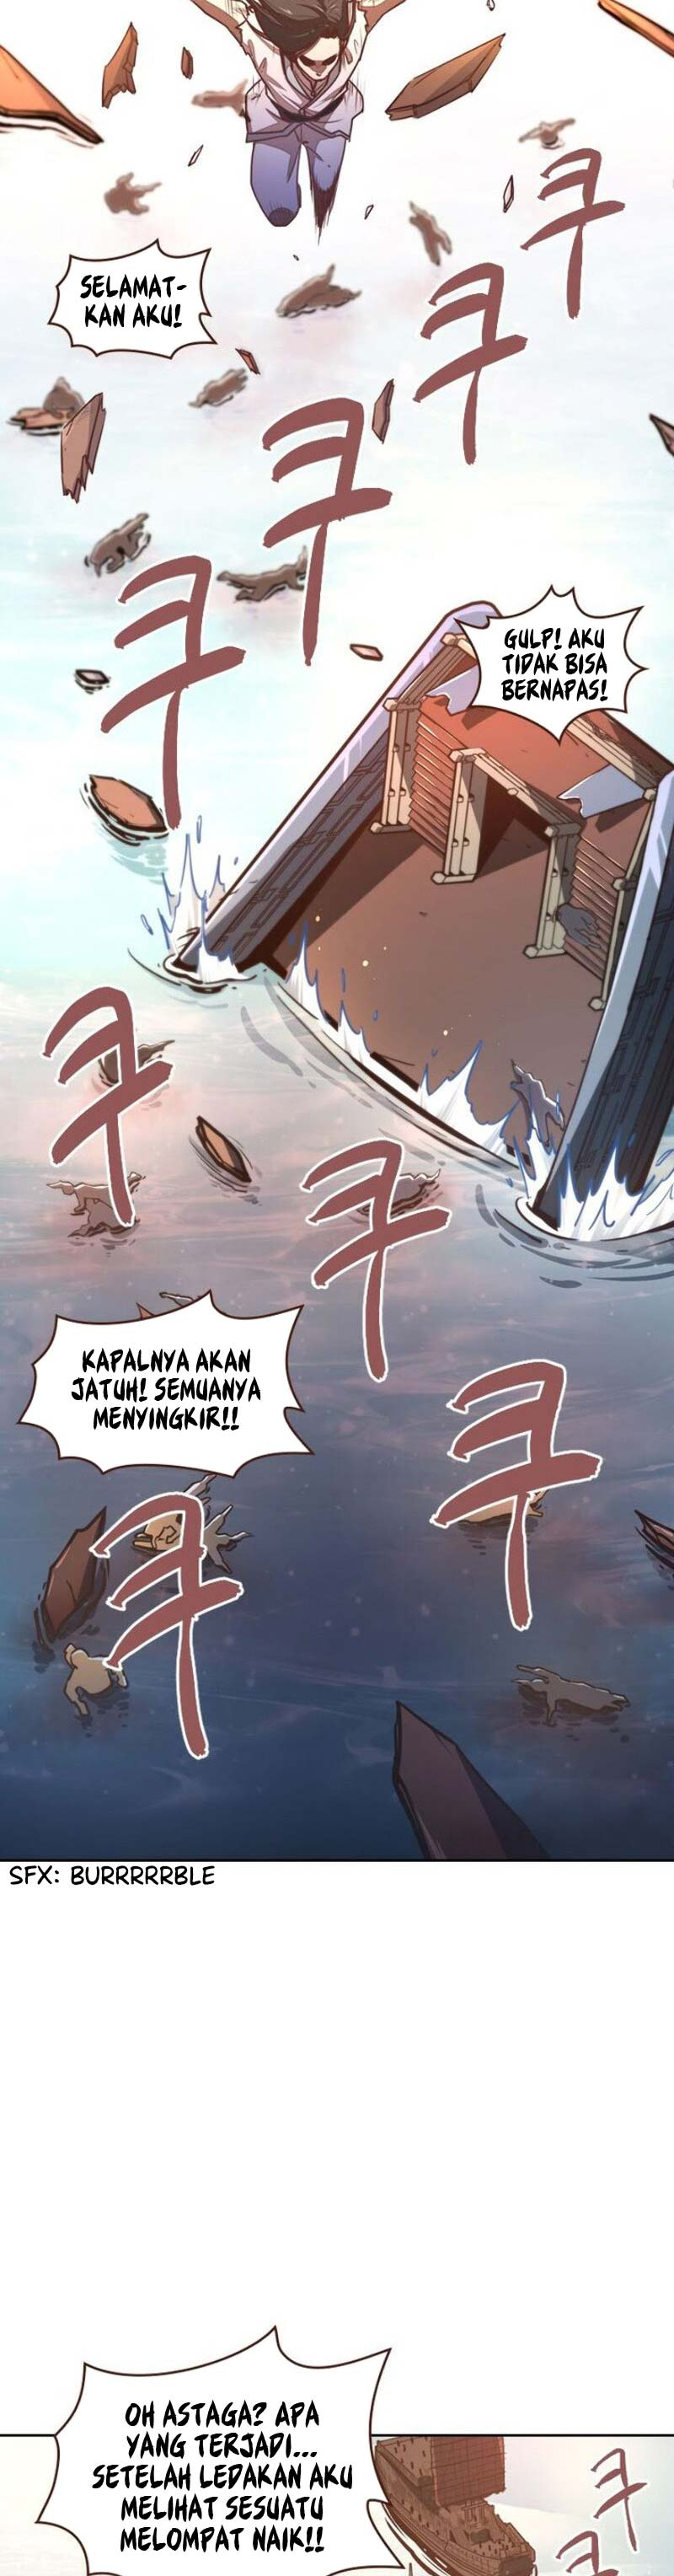 Life and Death: The Awakening Chapter 19 Bahasa Indonesia